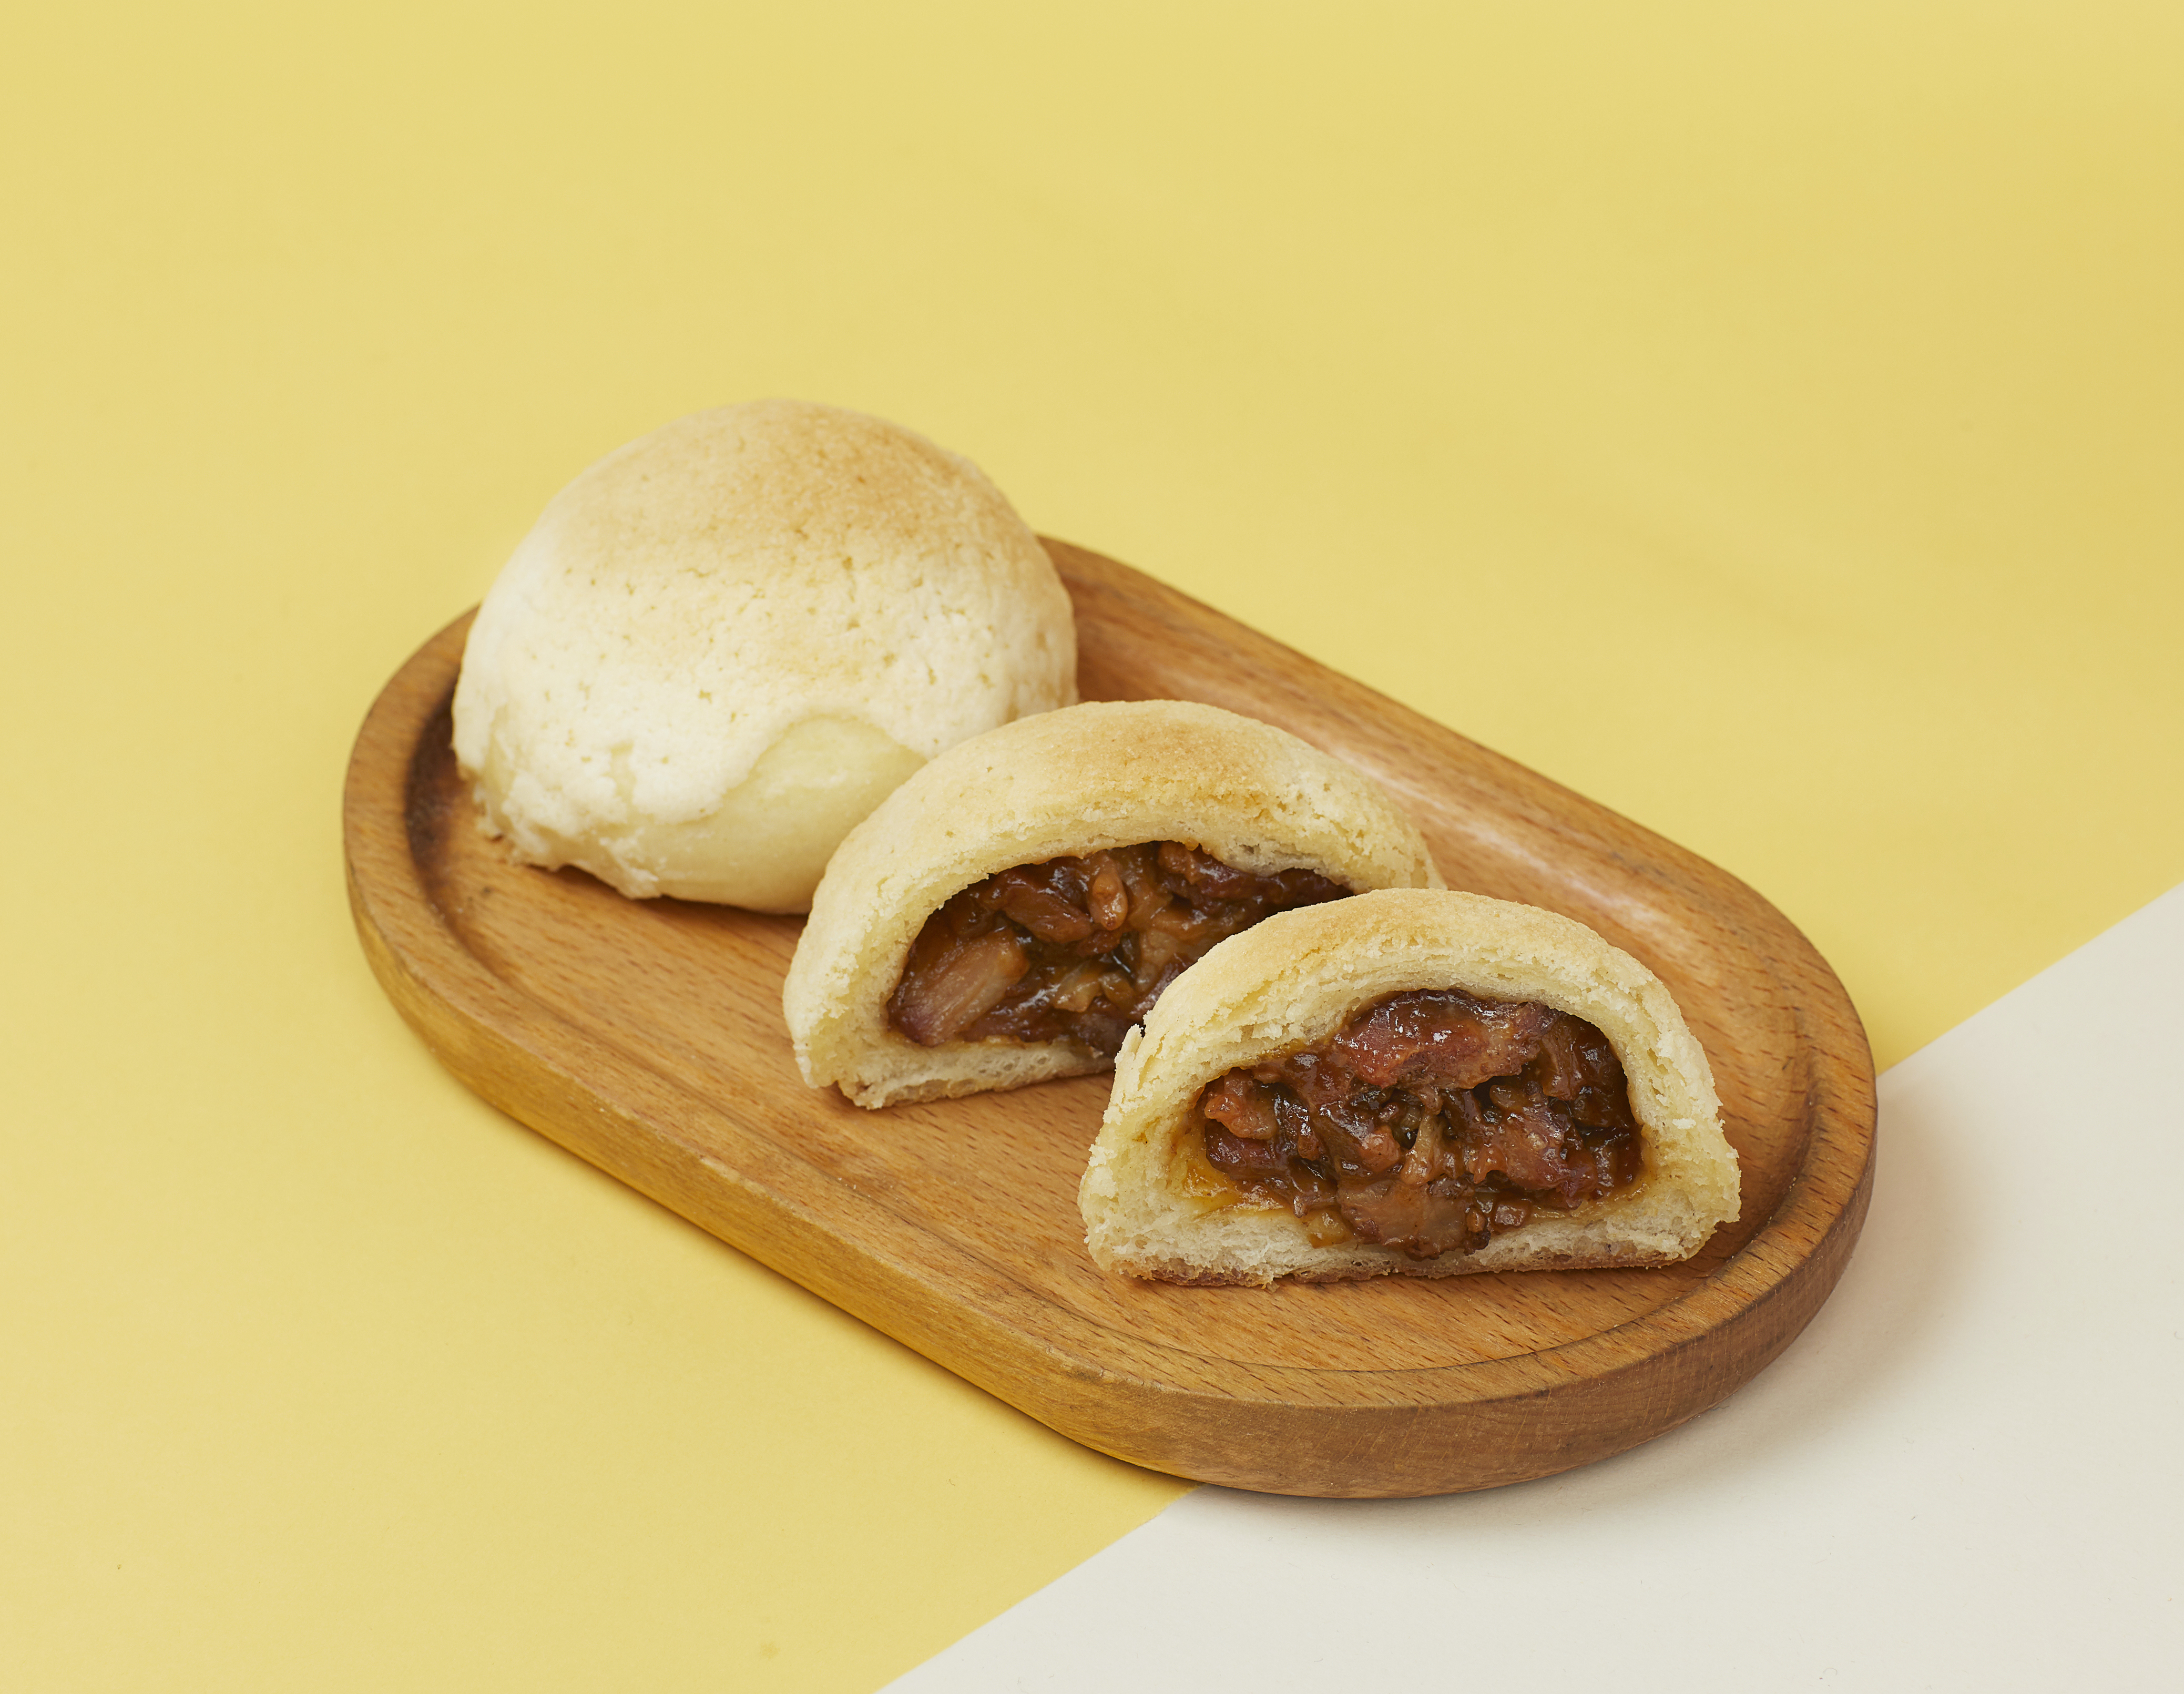 Two bao buns, one cut in half to show pork stuffed inside, sit on a wooden platter against a yellow and white background